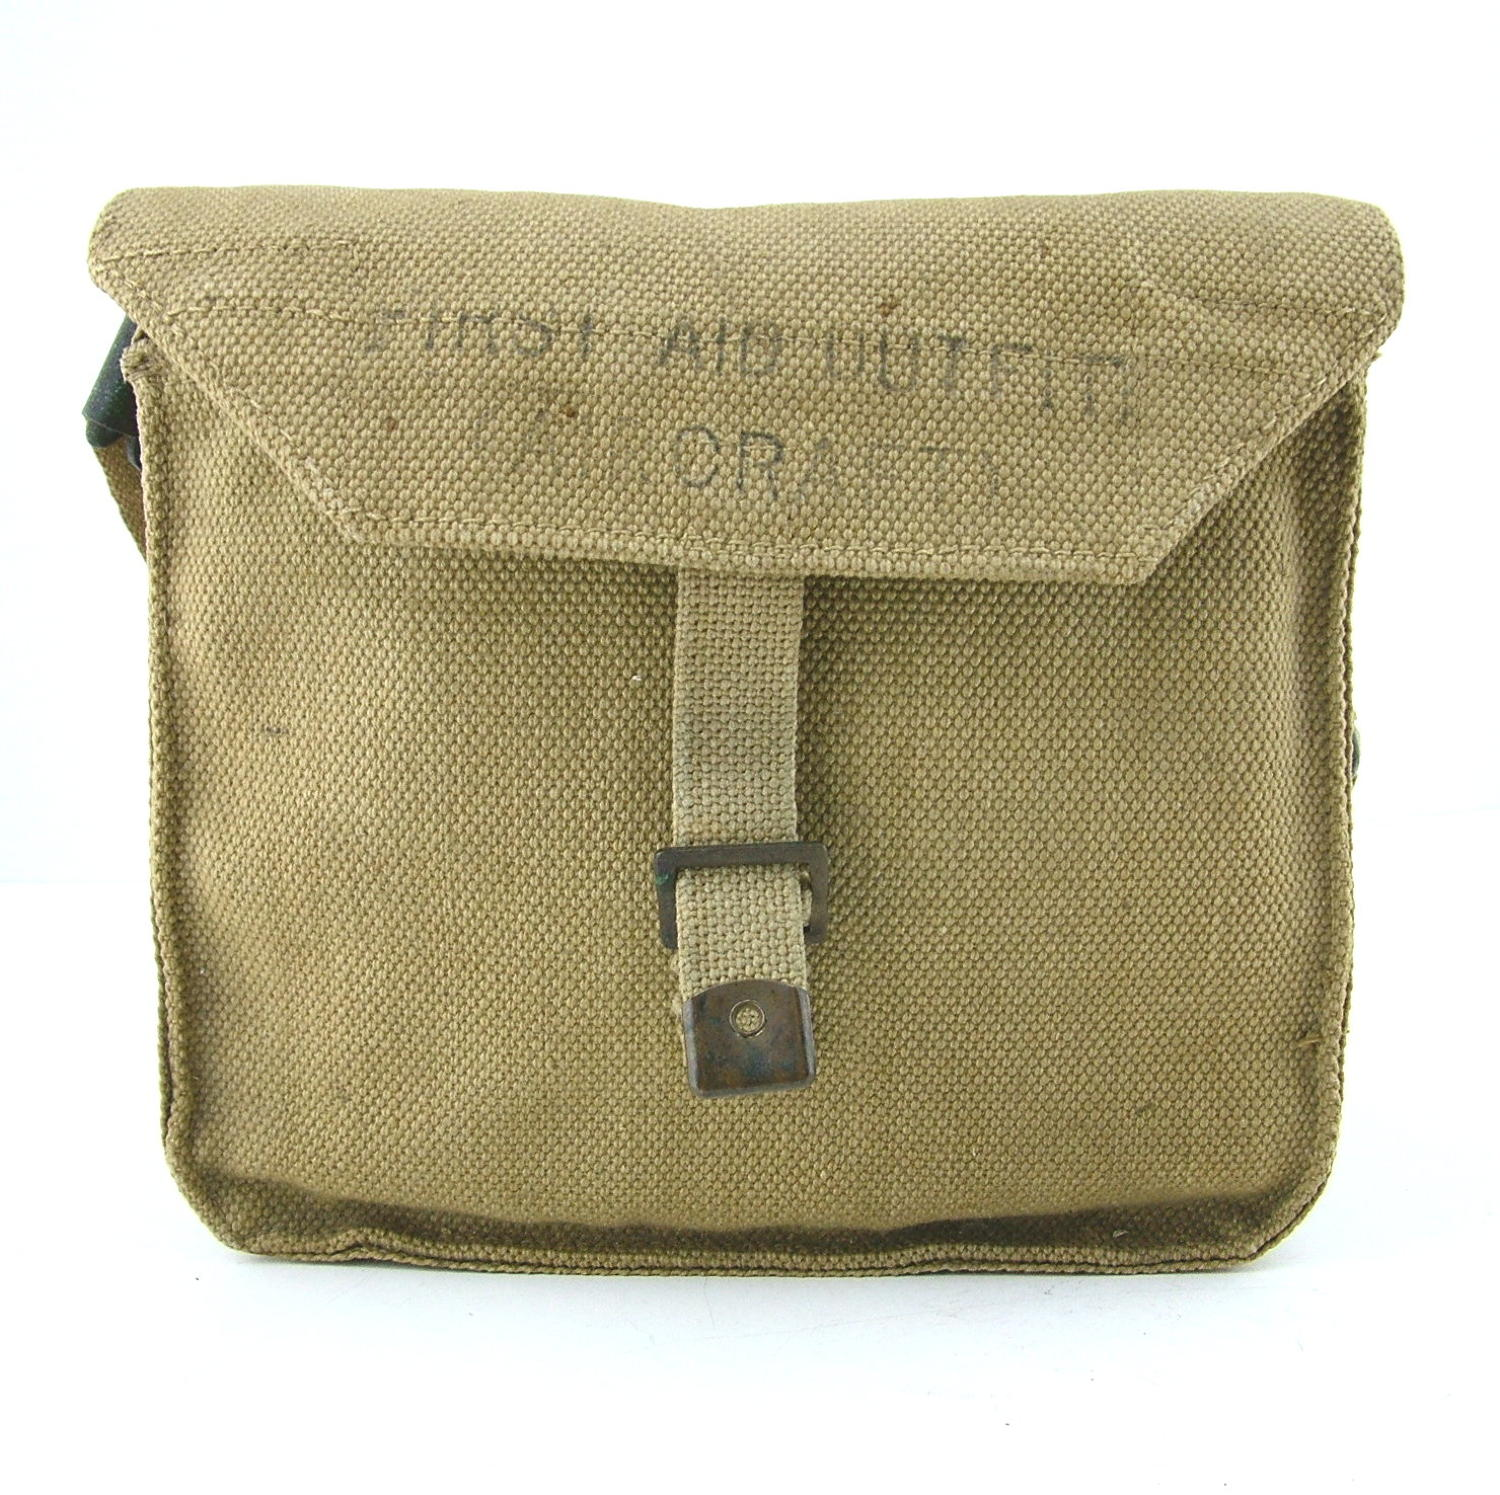 RAF first aid outfit, aircraft - complete